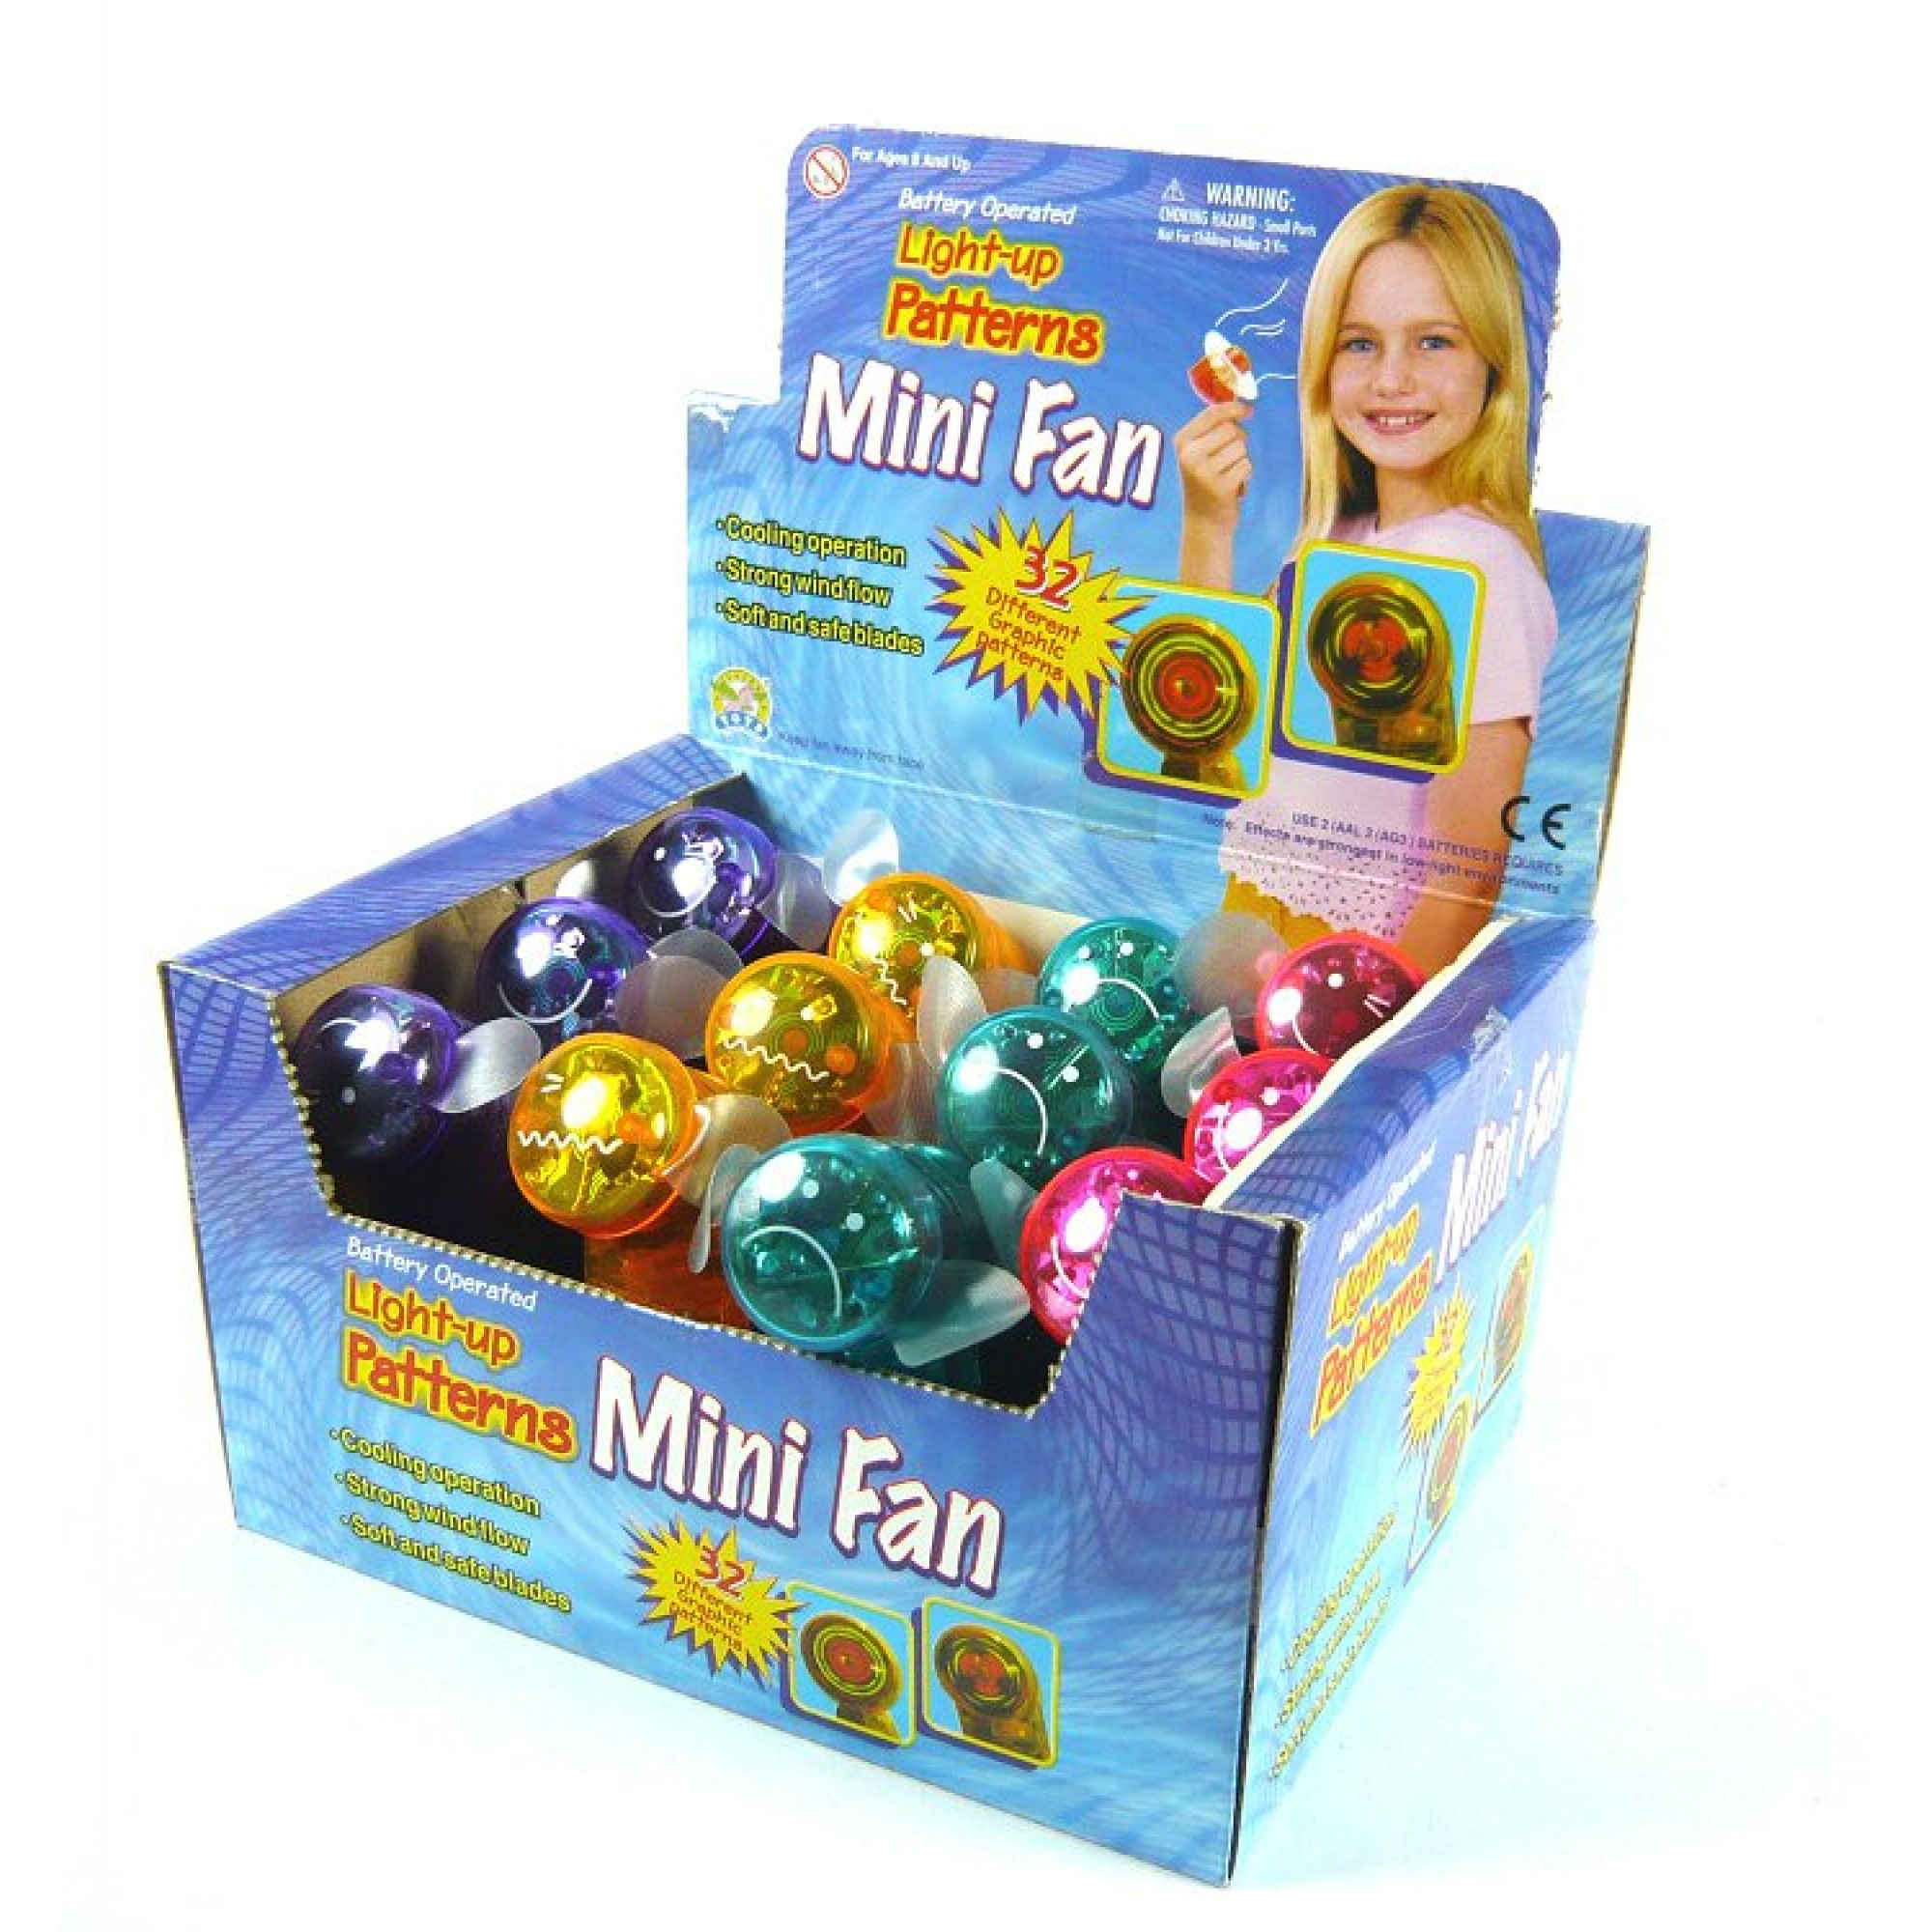 Mini Fan w/Laser Patterns